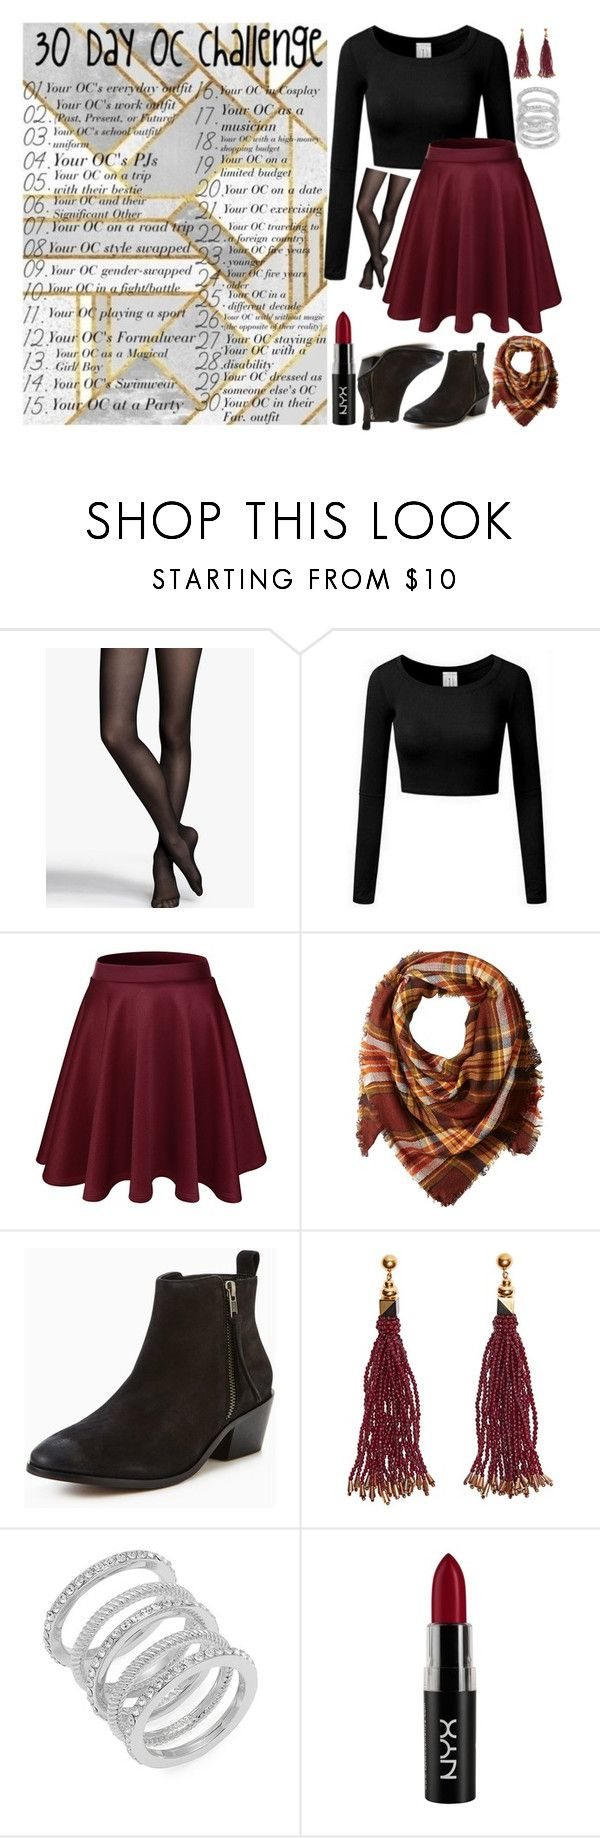 """""""Emma Hills Party Outfit"""" by sarah-rose-312205 ❤ liked on Polyvore featuring Express, La Fiorentina, Carvela, Nocturne, Cole Haan and NYX"""